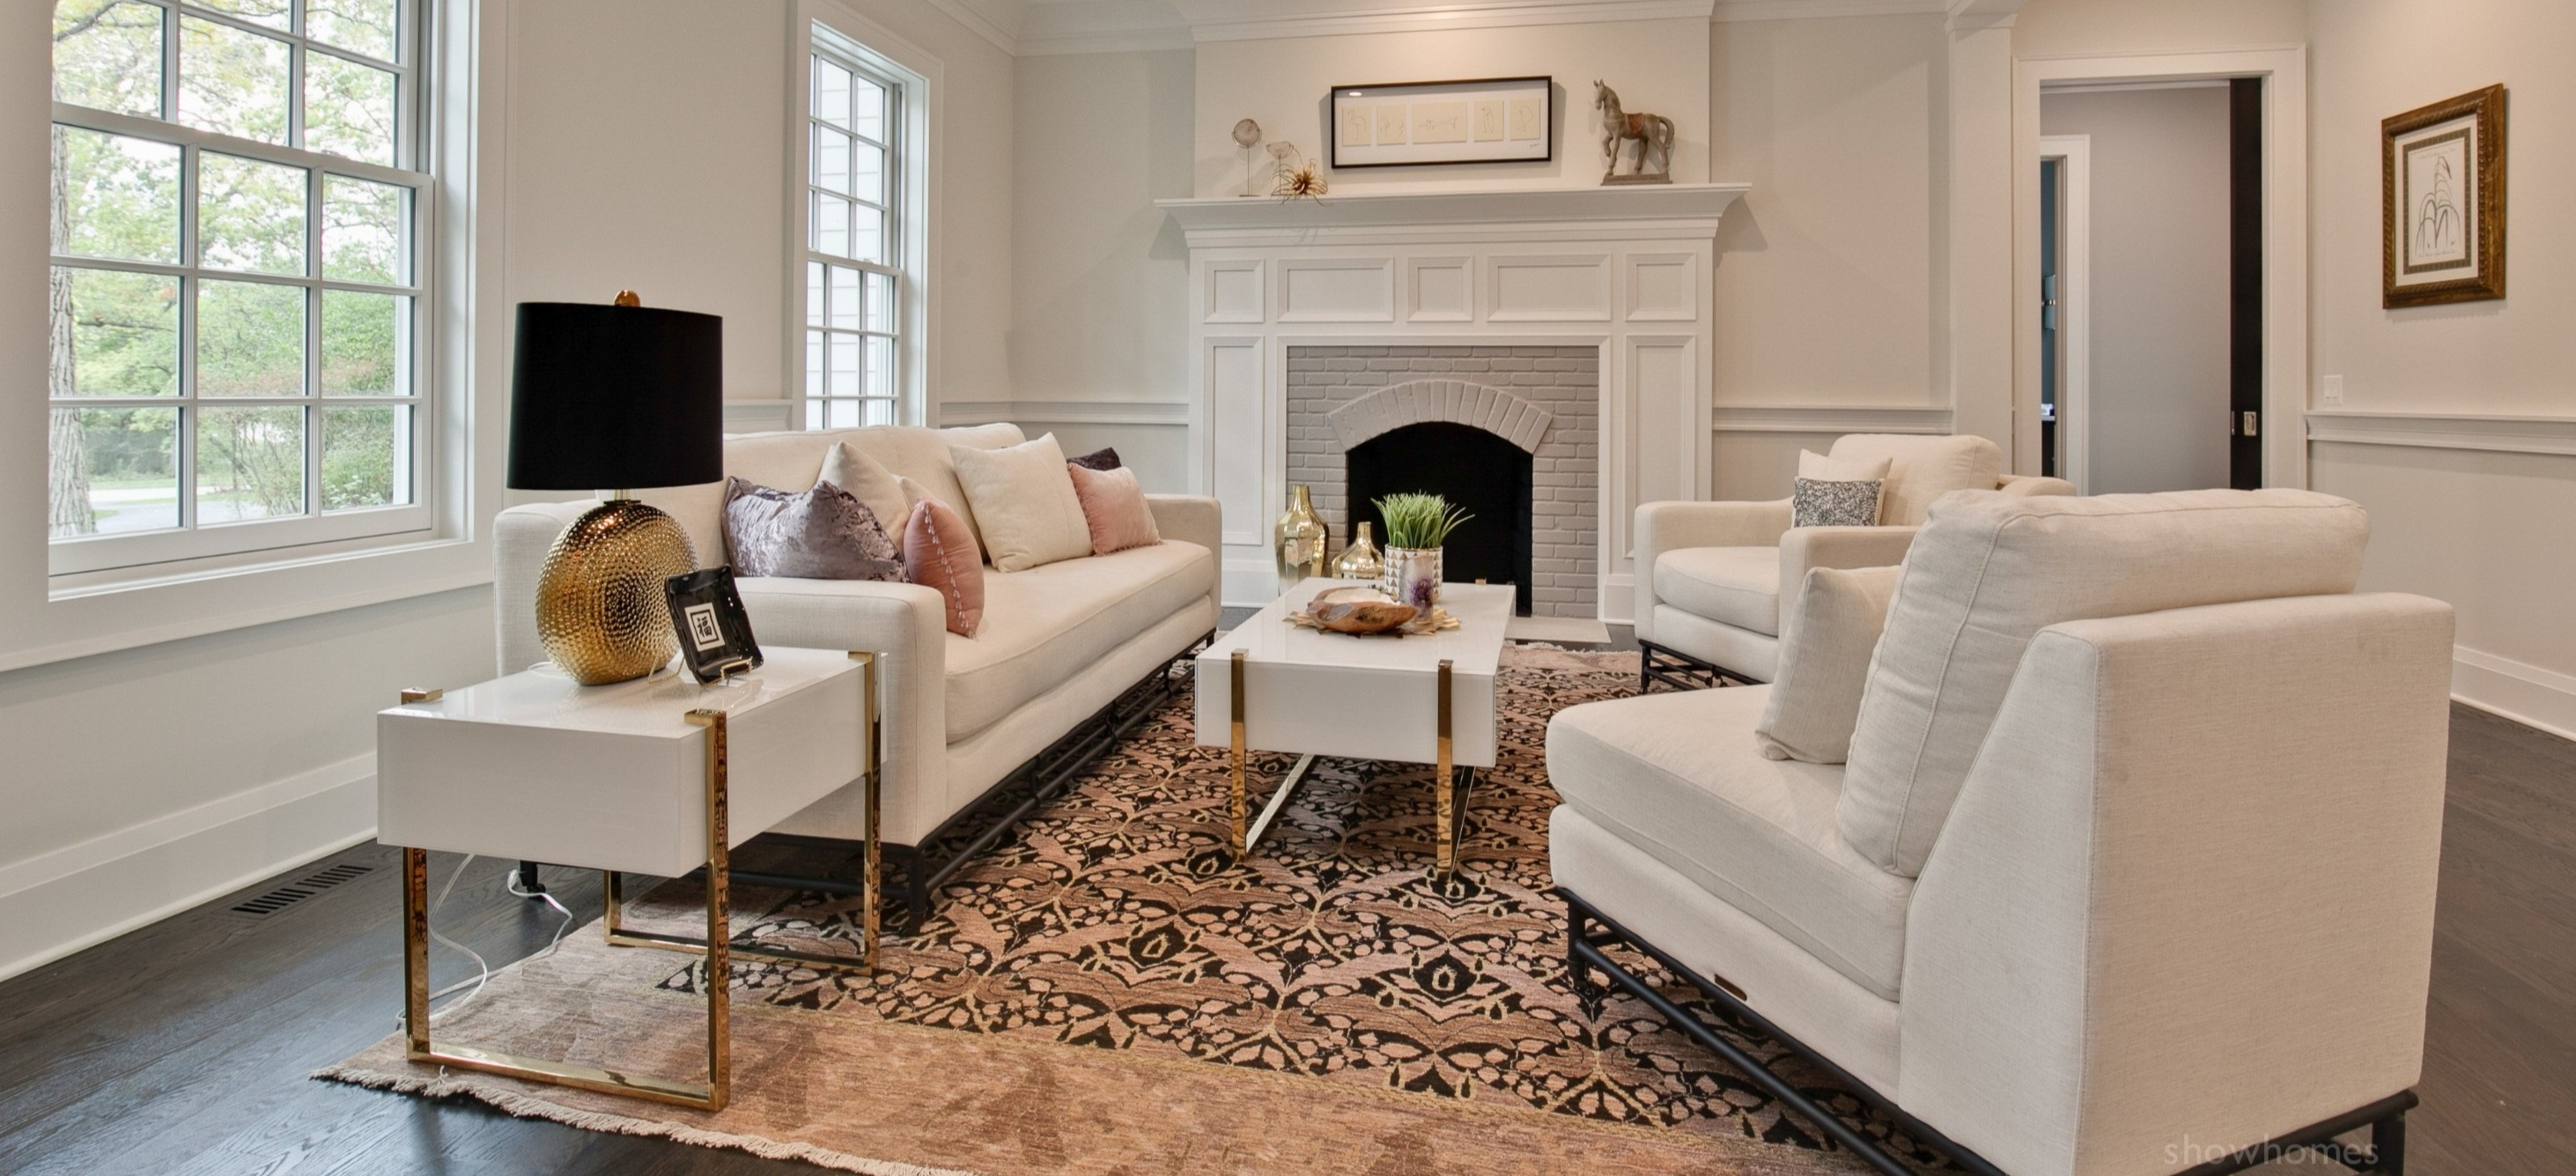 Pleasing Showhomes Americas Largest Home Staging Company Home Interior And Landscaping Spoatsignezvosmurscom